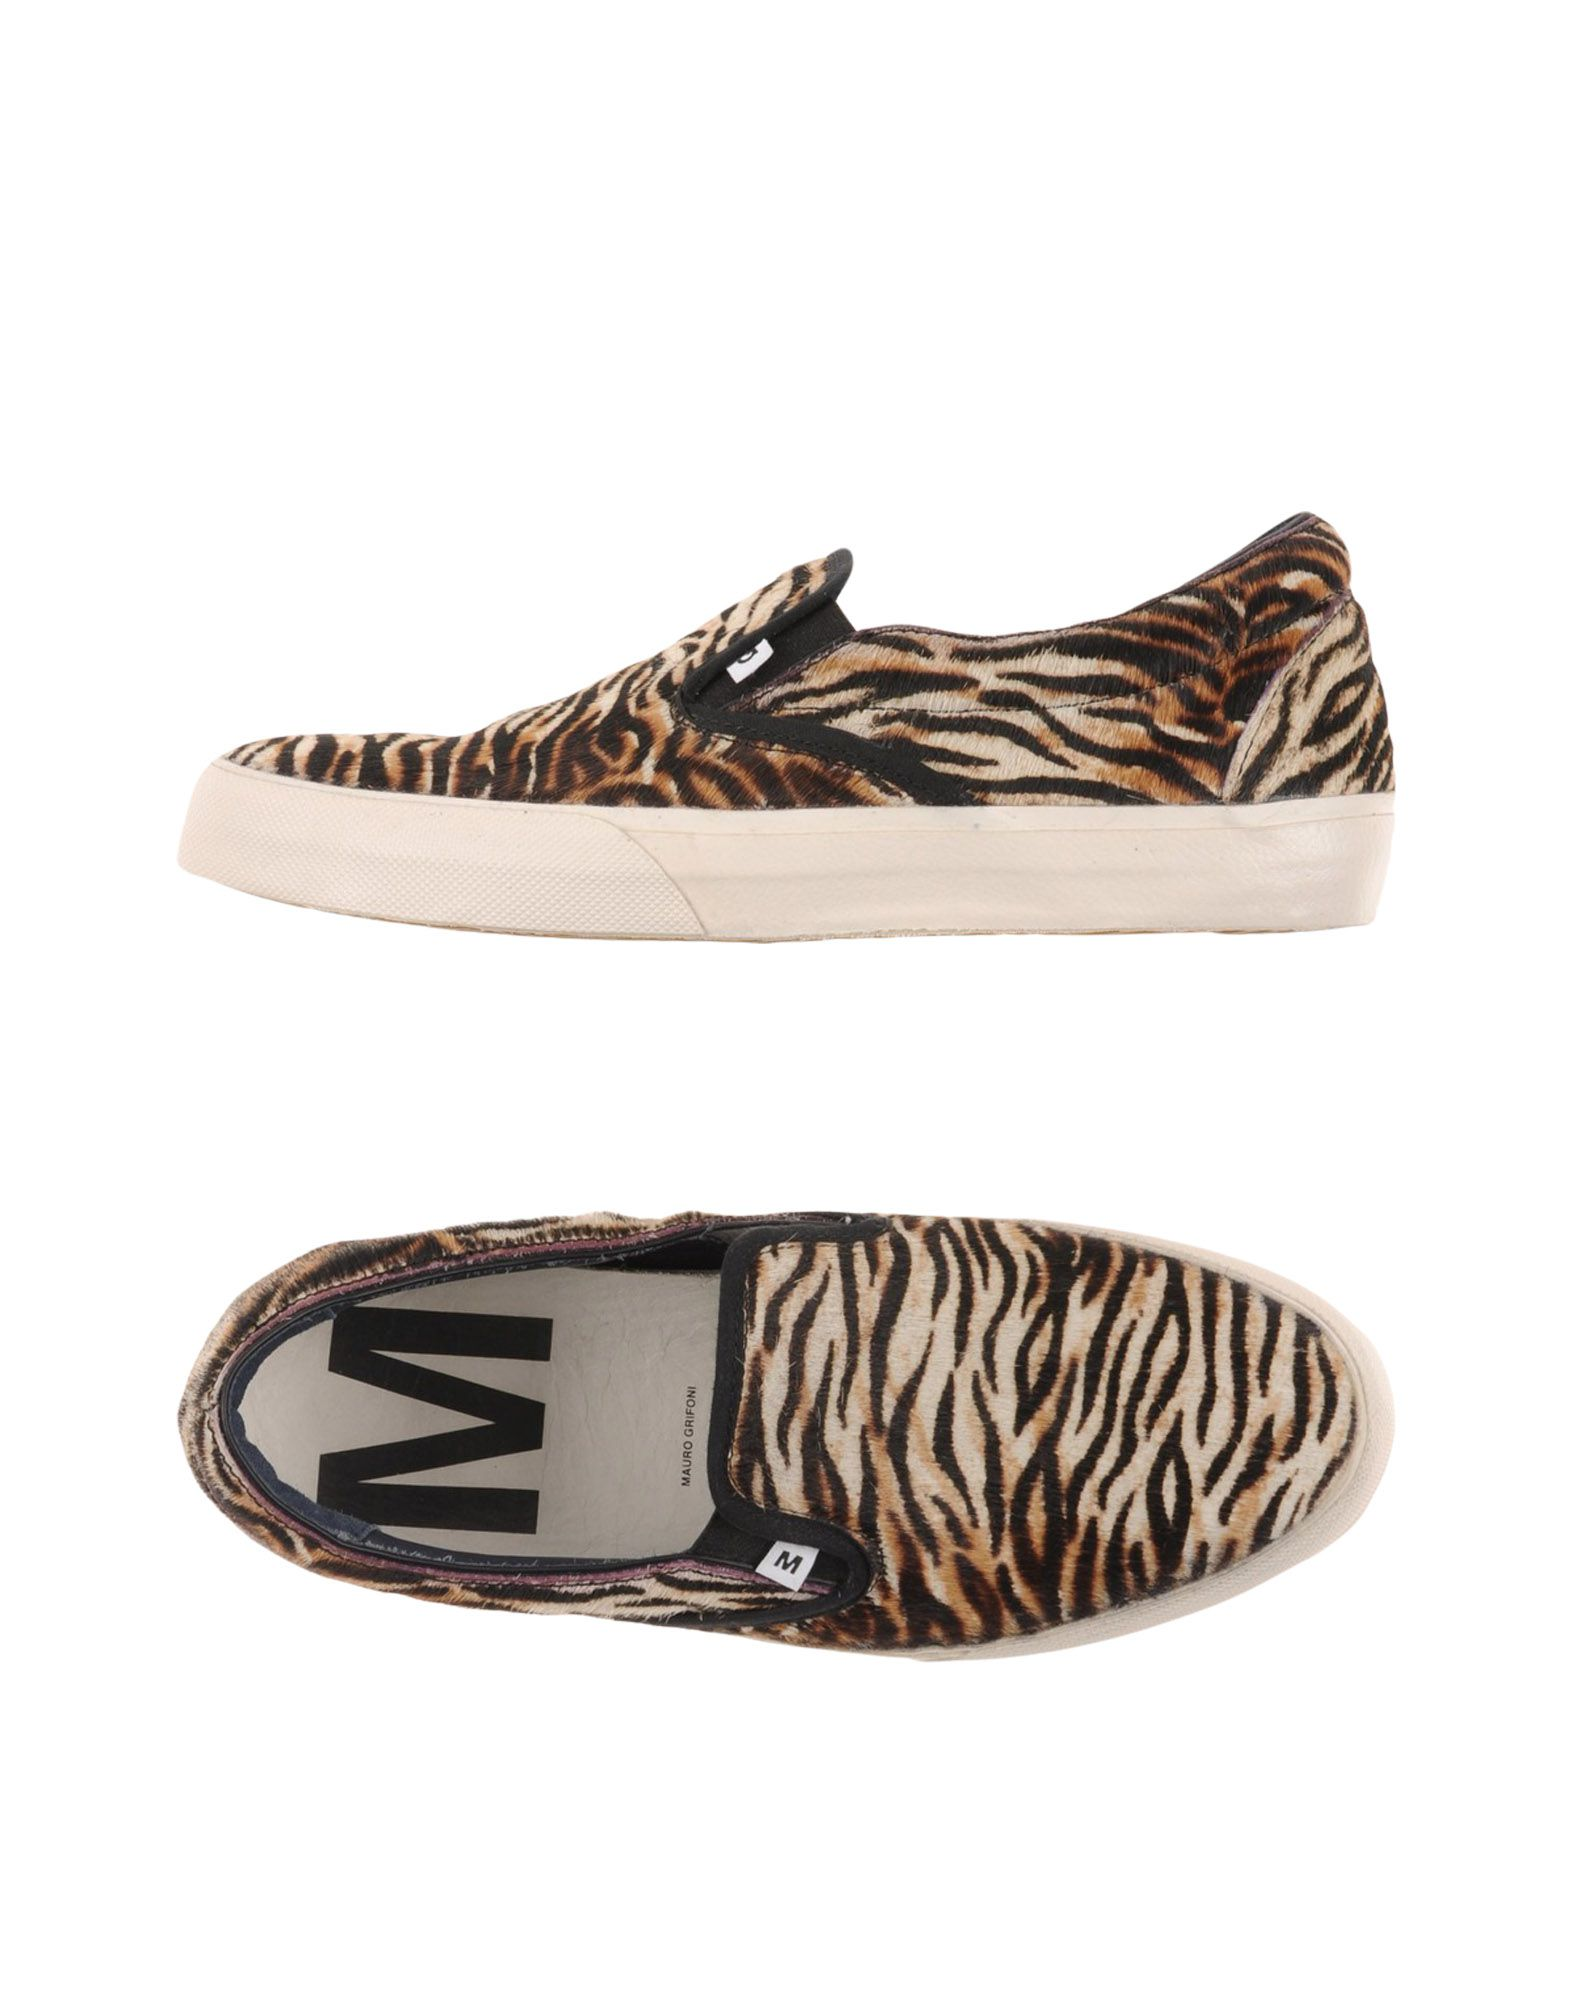 Sneakers Mauro Grifoni Femme - Sneakers Mauro Grifoni sur